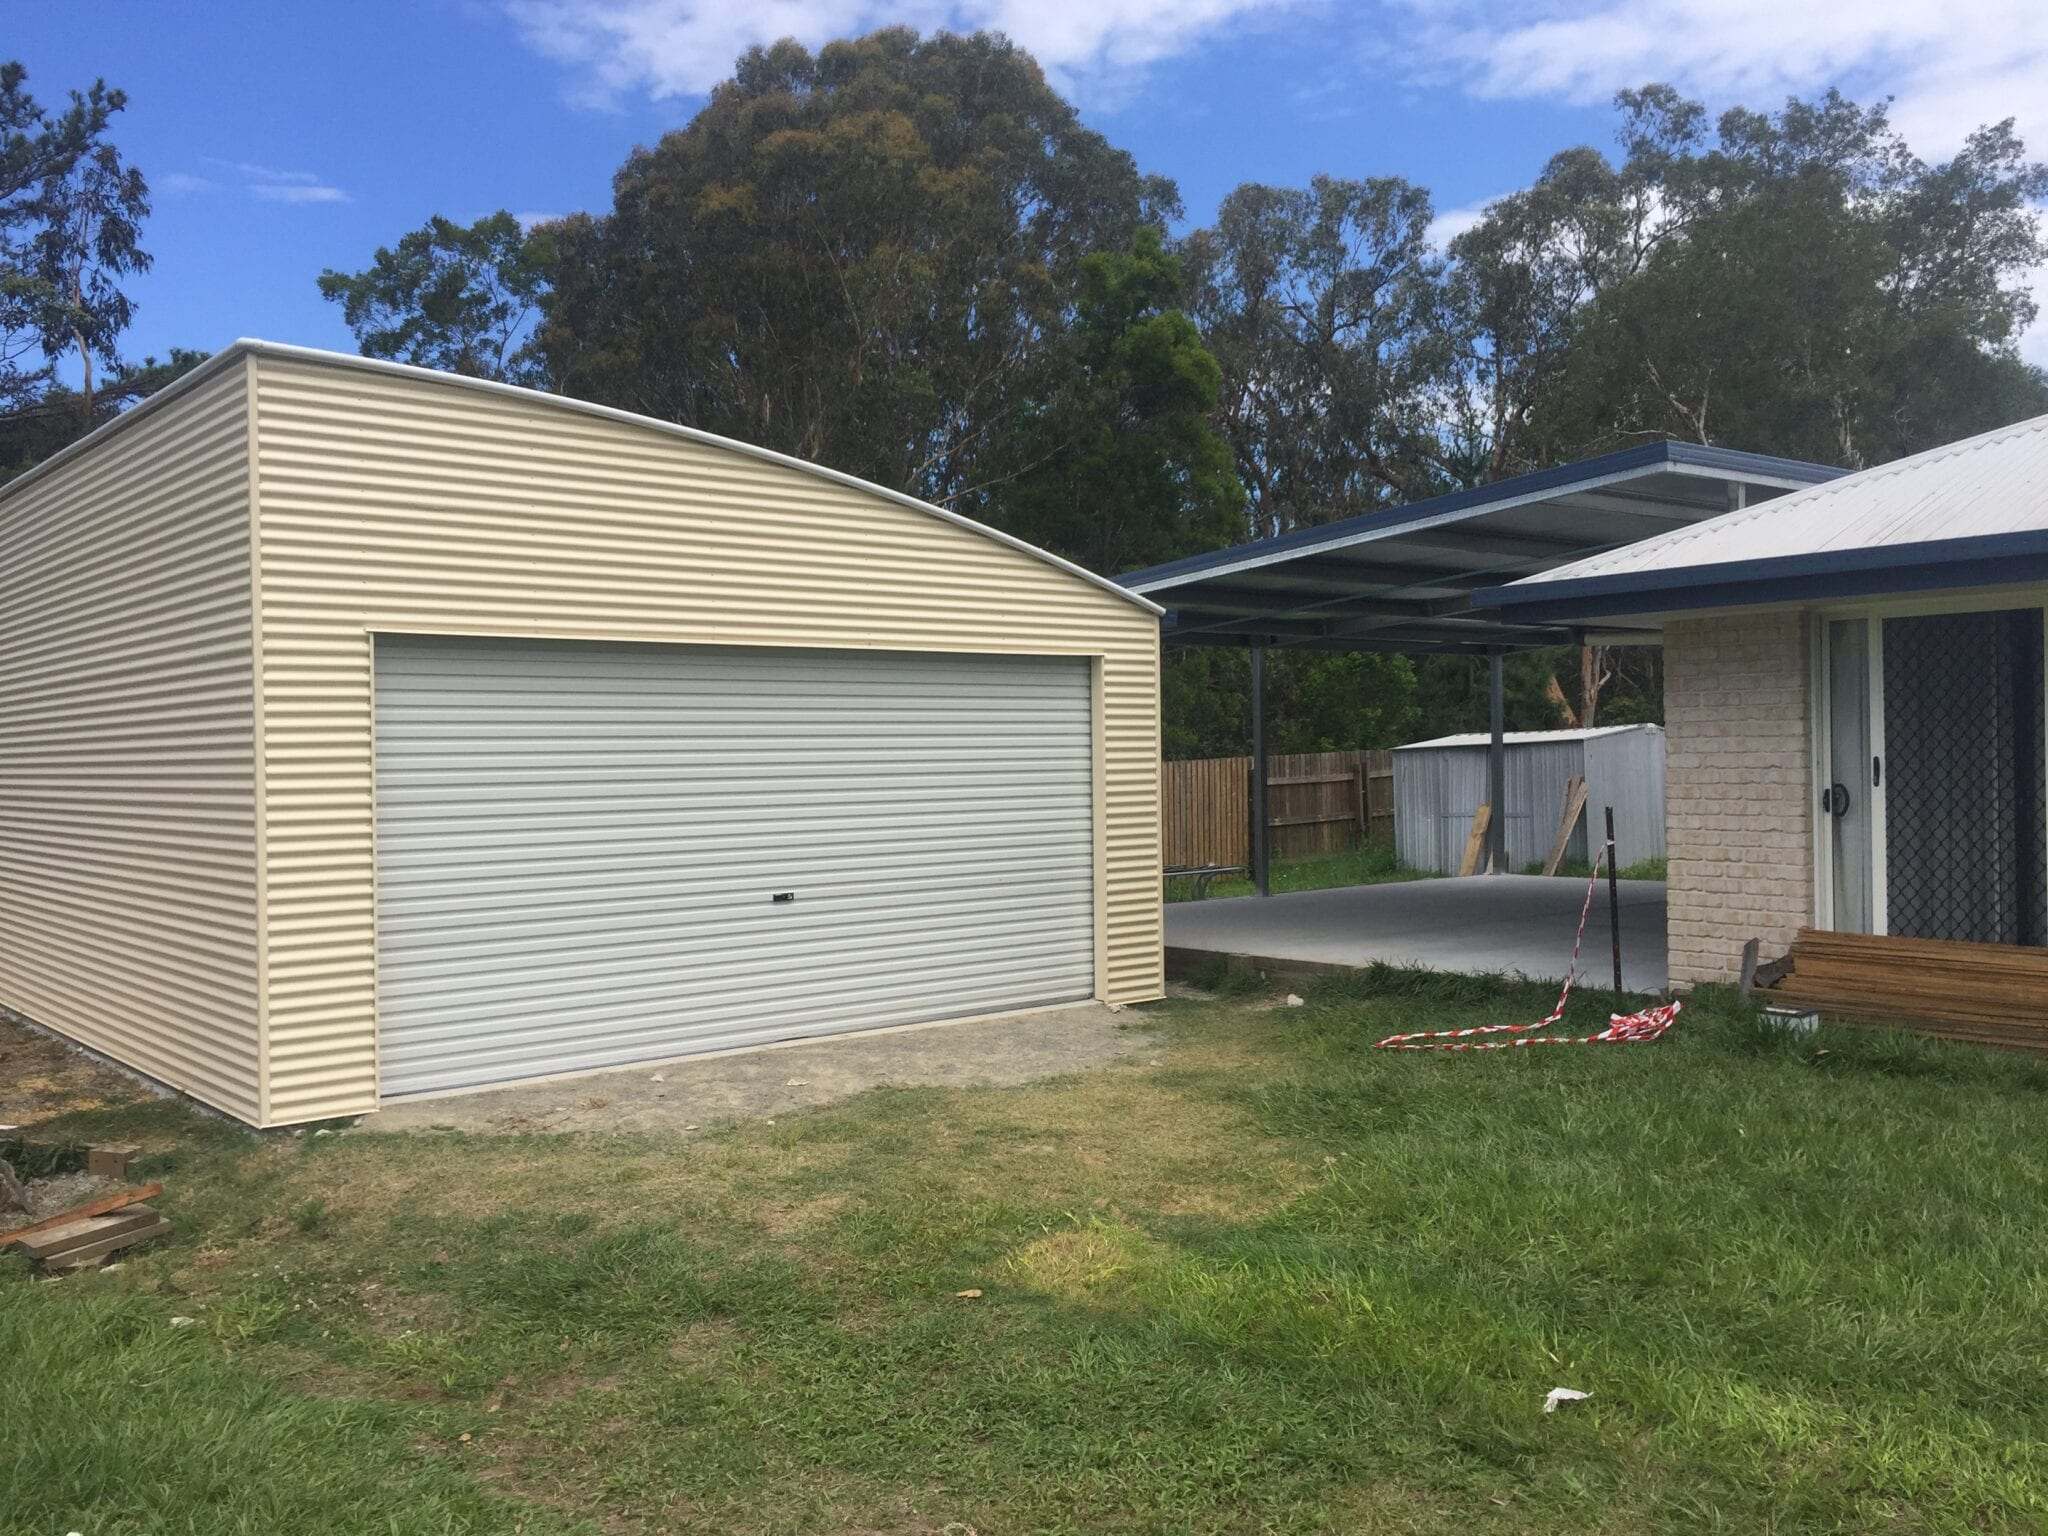 Curved Roof Cream garage and owning